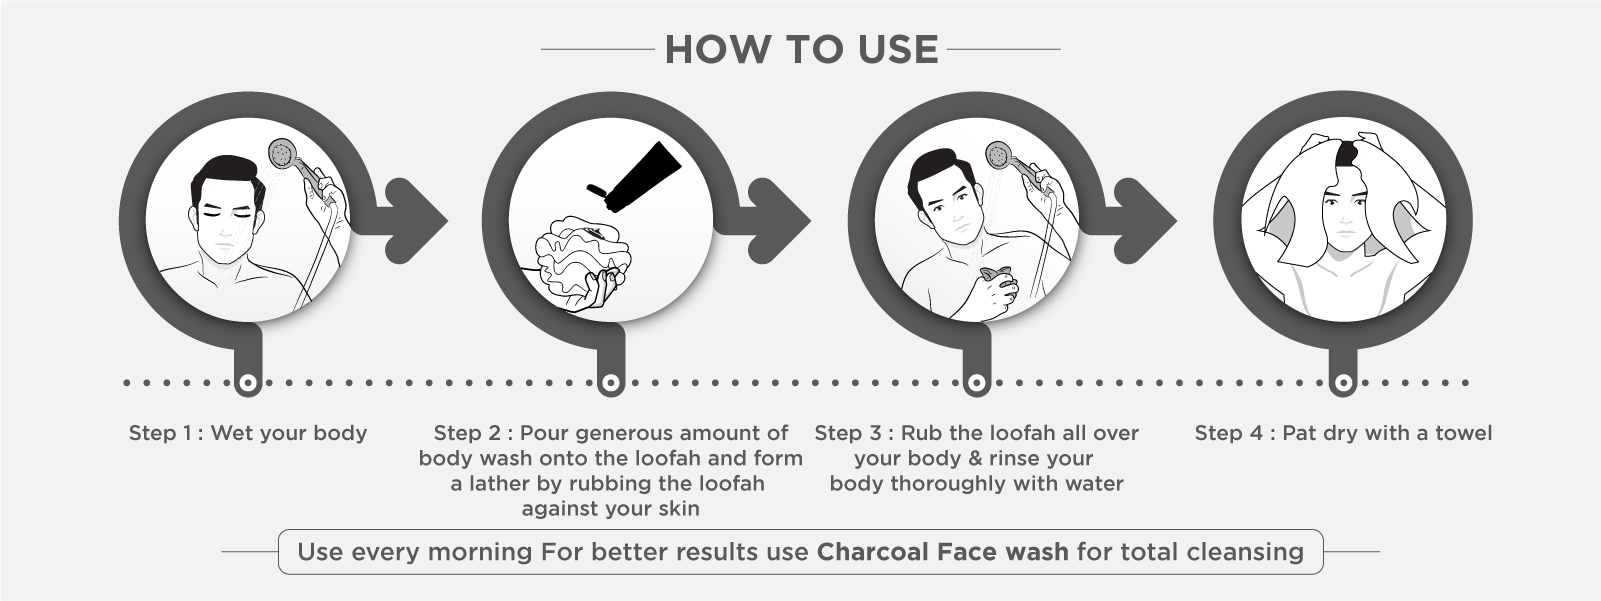 How to use Body wash